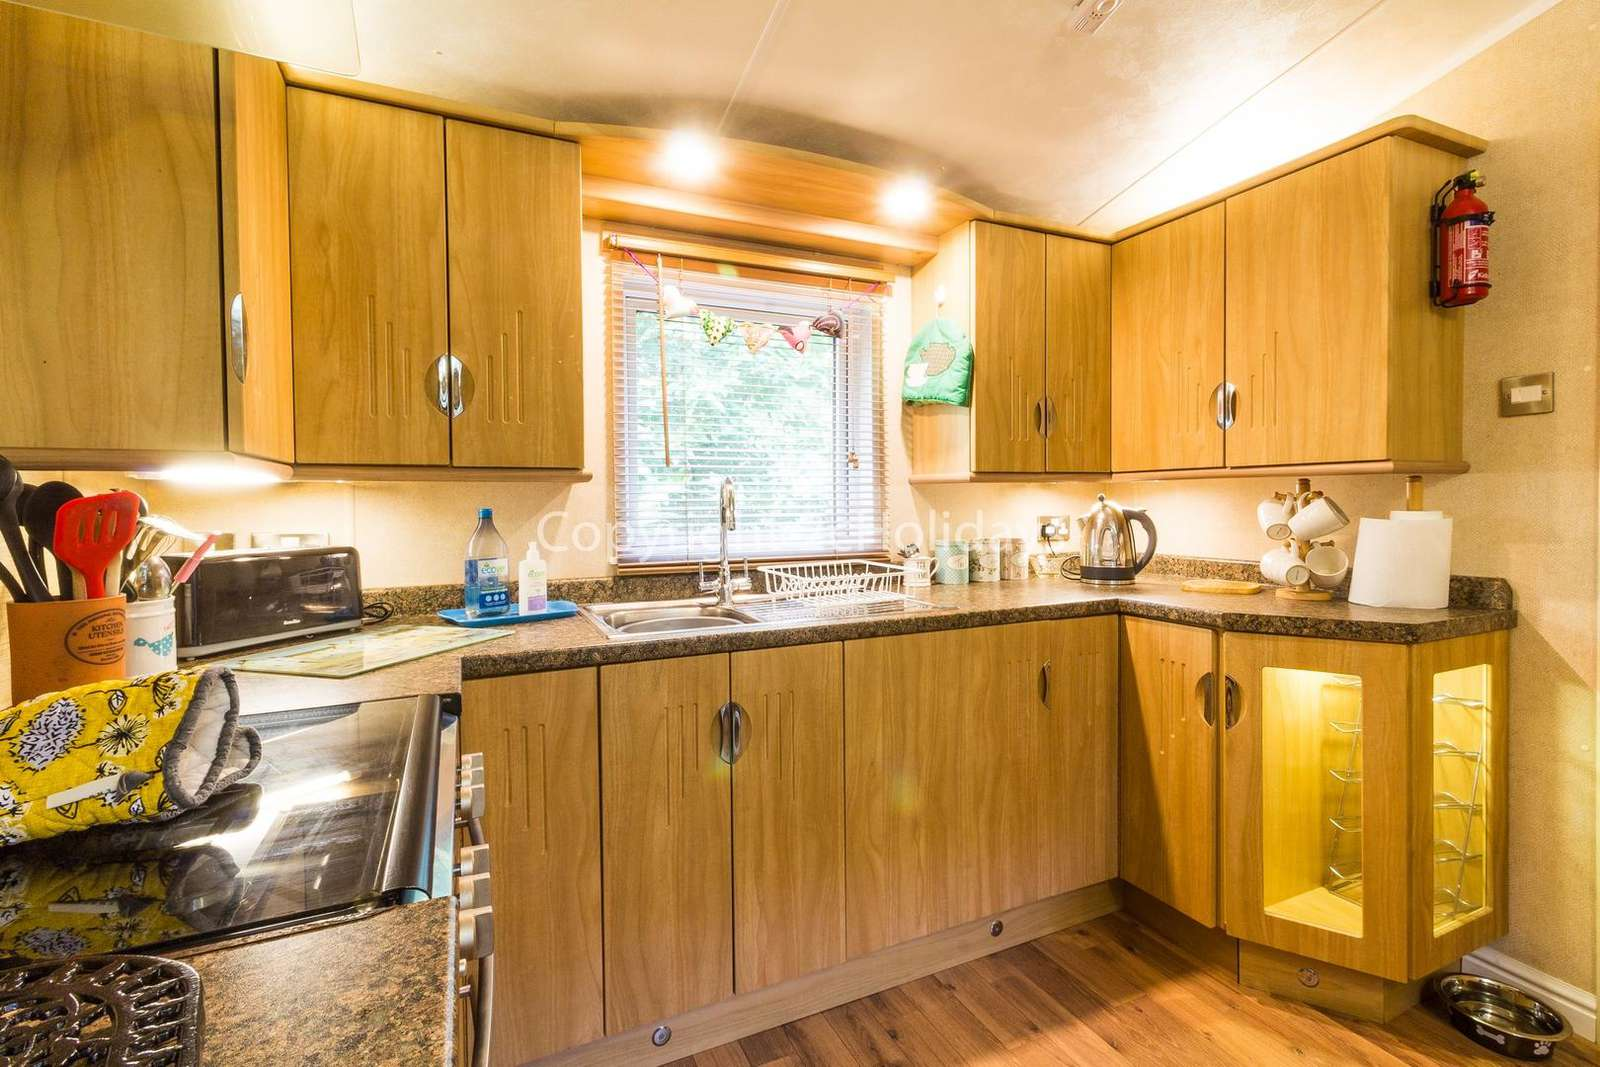 This kitchen includes a full size oven and a washer/drier!